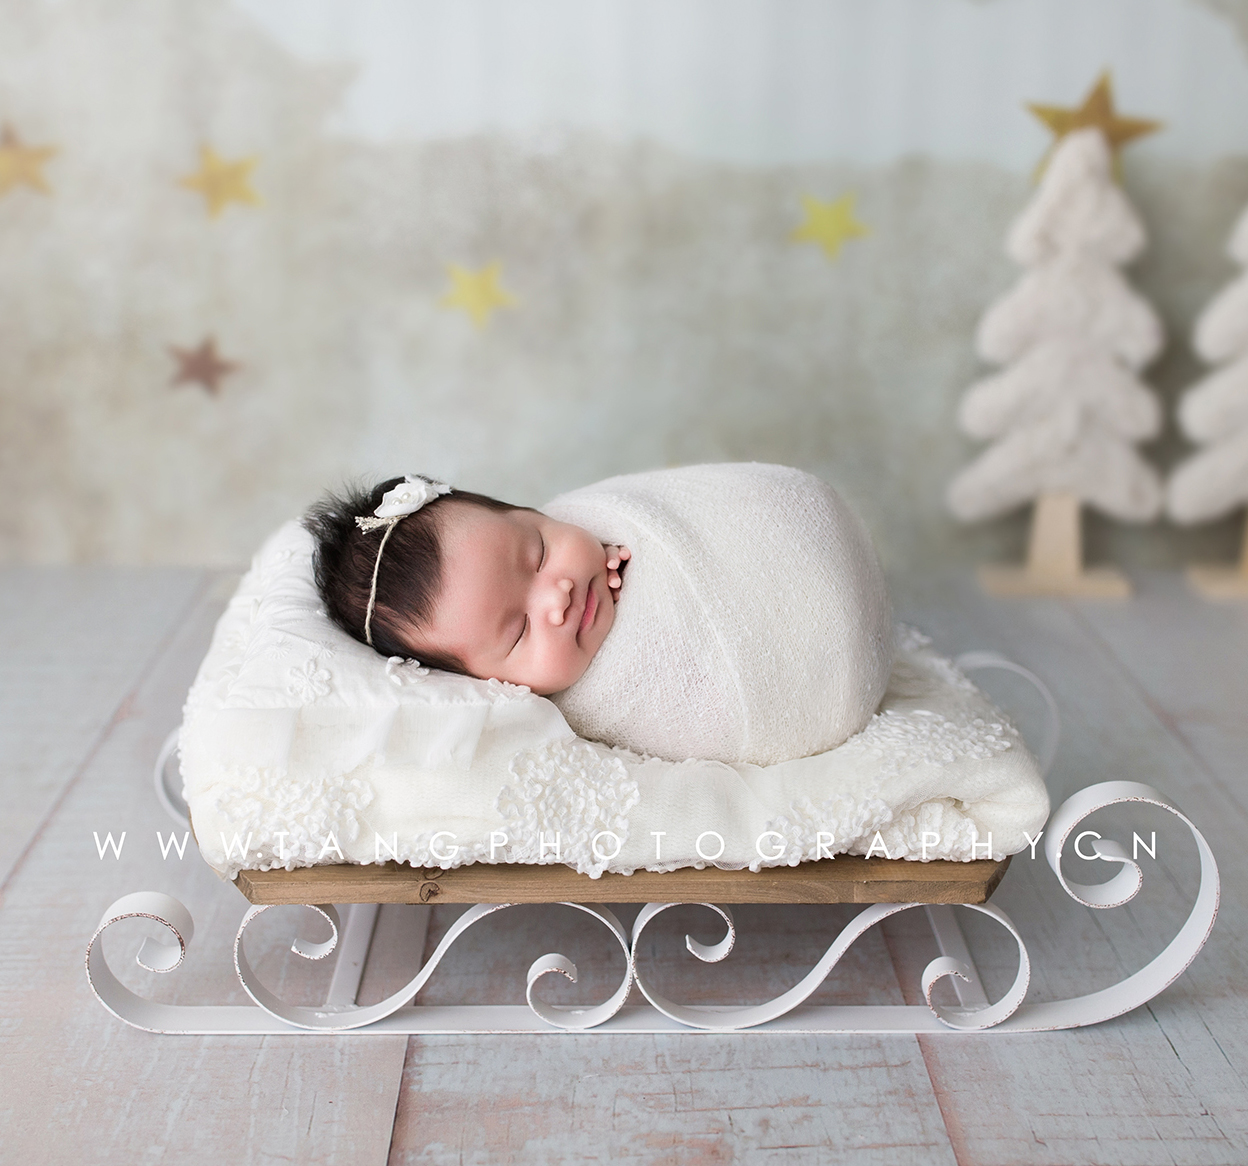 Newborn Photography Props Baby Photo Creative Props Newborn Carriage Small Bed Props Studio Photo